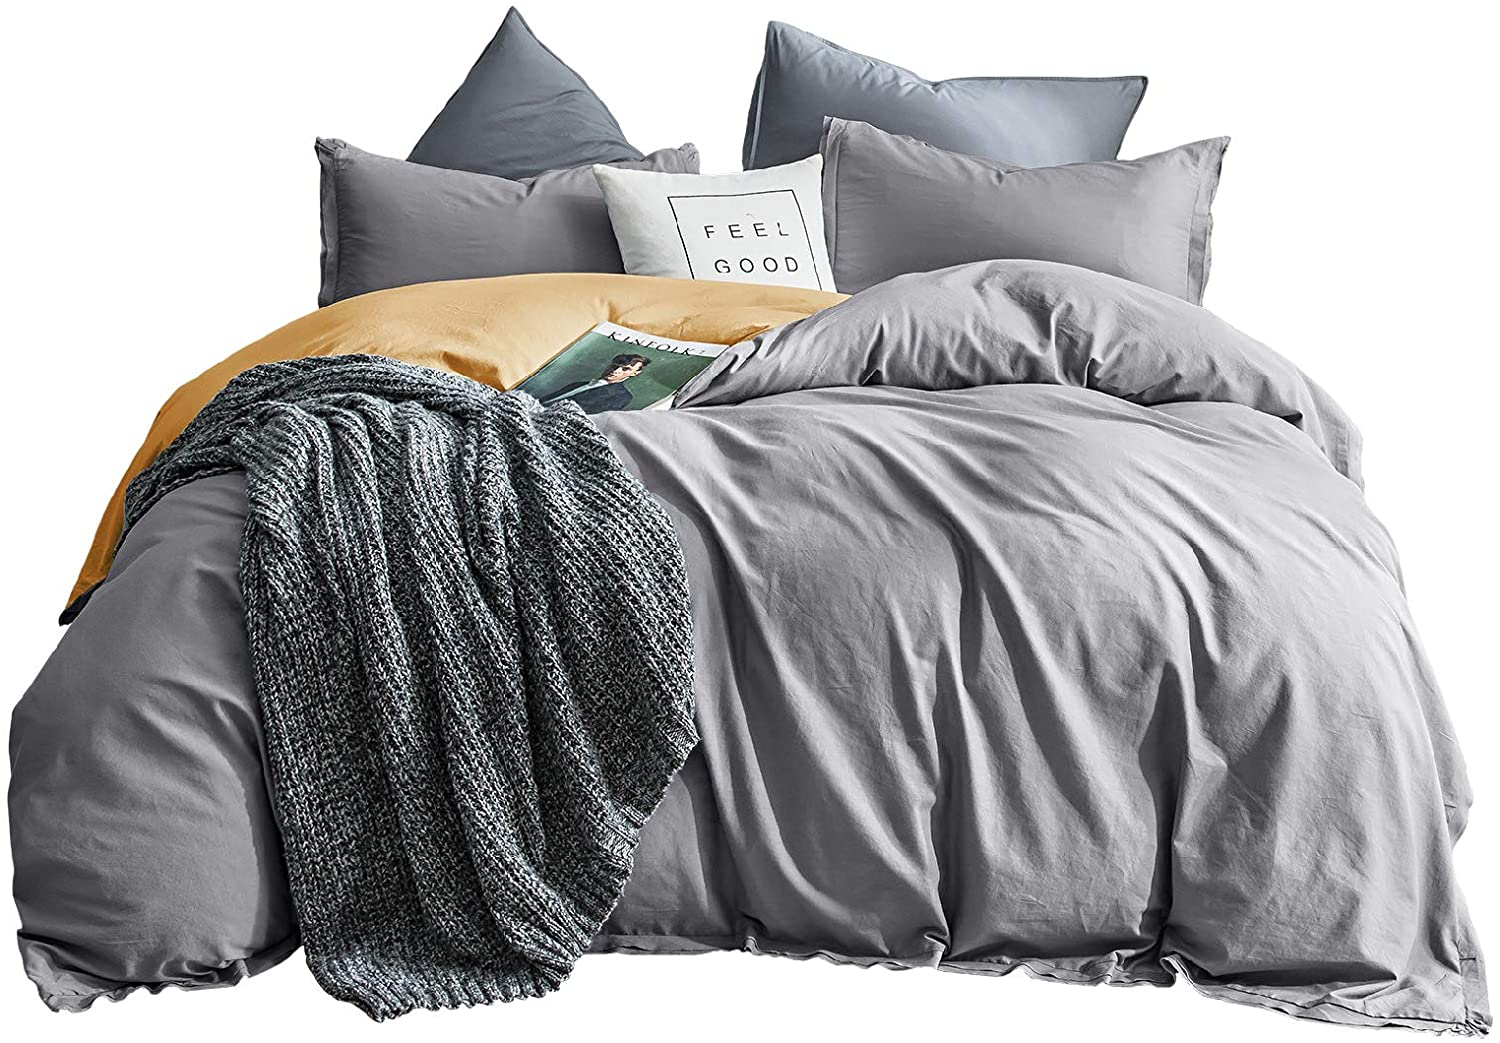 SHALALA NEW YORK Cotton Duvet Cover Set 3 Piece - 1 Duvet Cover 2 Pillow Shams - Soft Pre-Washed Garment with Self Flange – Four Woven Cotton Bands to Keep Comforter in Place Gray & Yellow Full/Queen